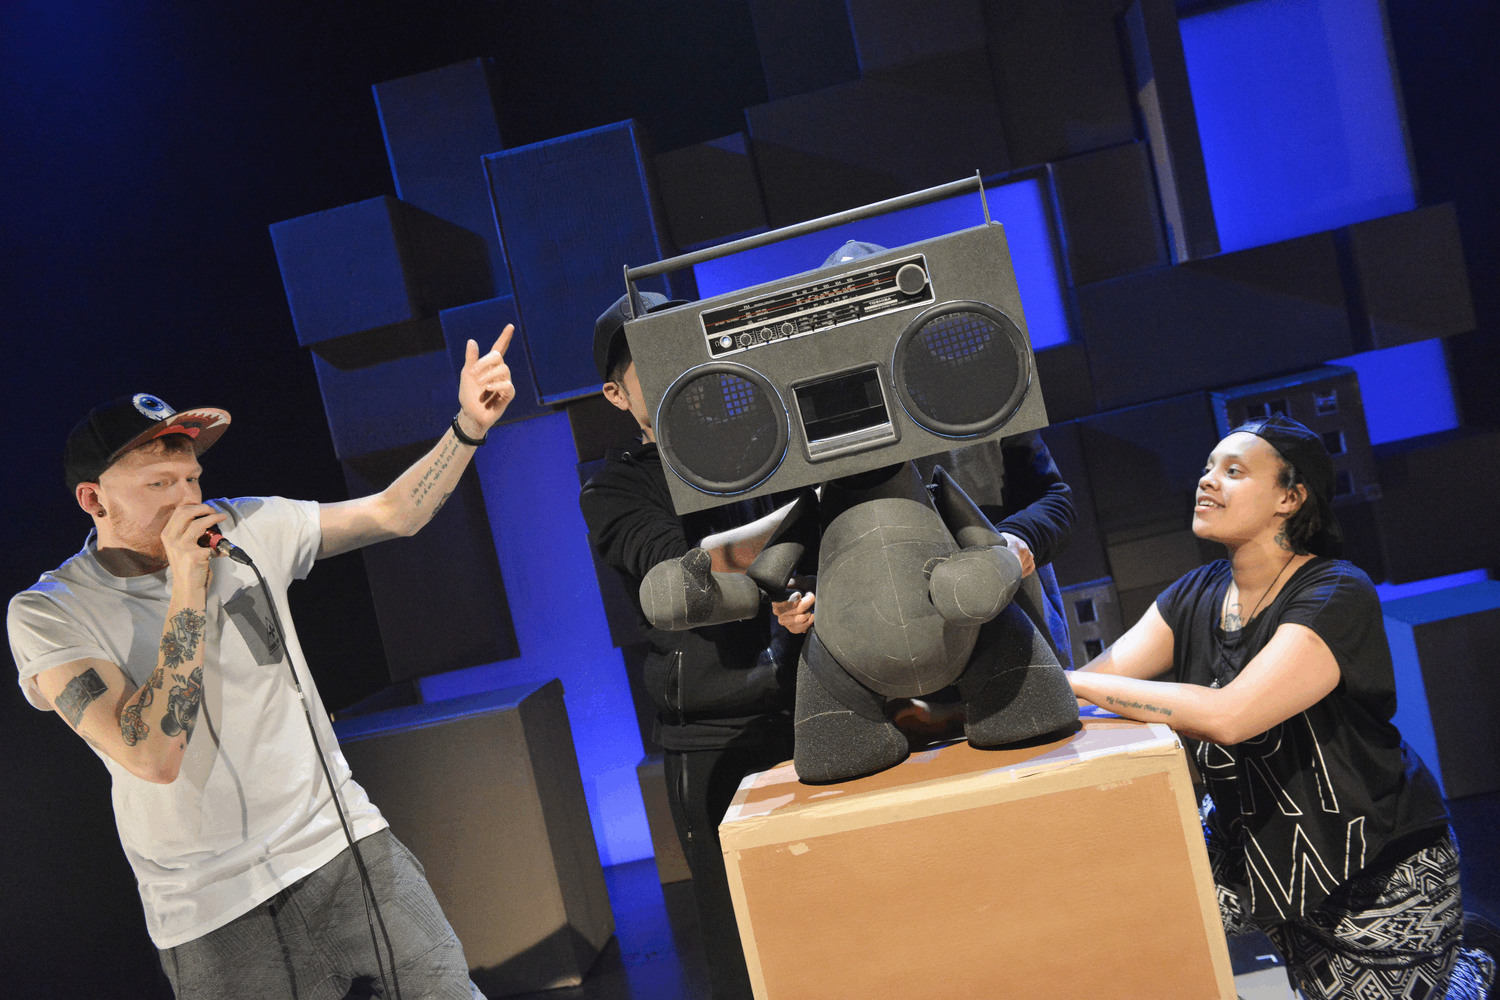 A puppet with a boom box for a head and a dummy toy body stands on a box. He is manipulated by three performers. One other performer is jamming with him.